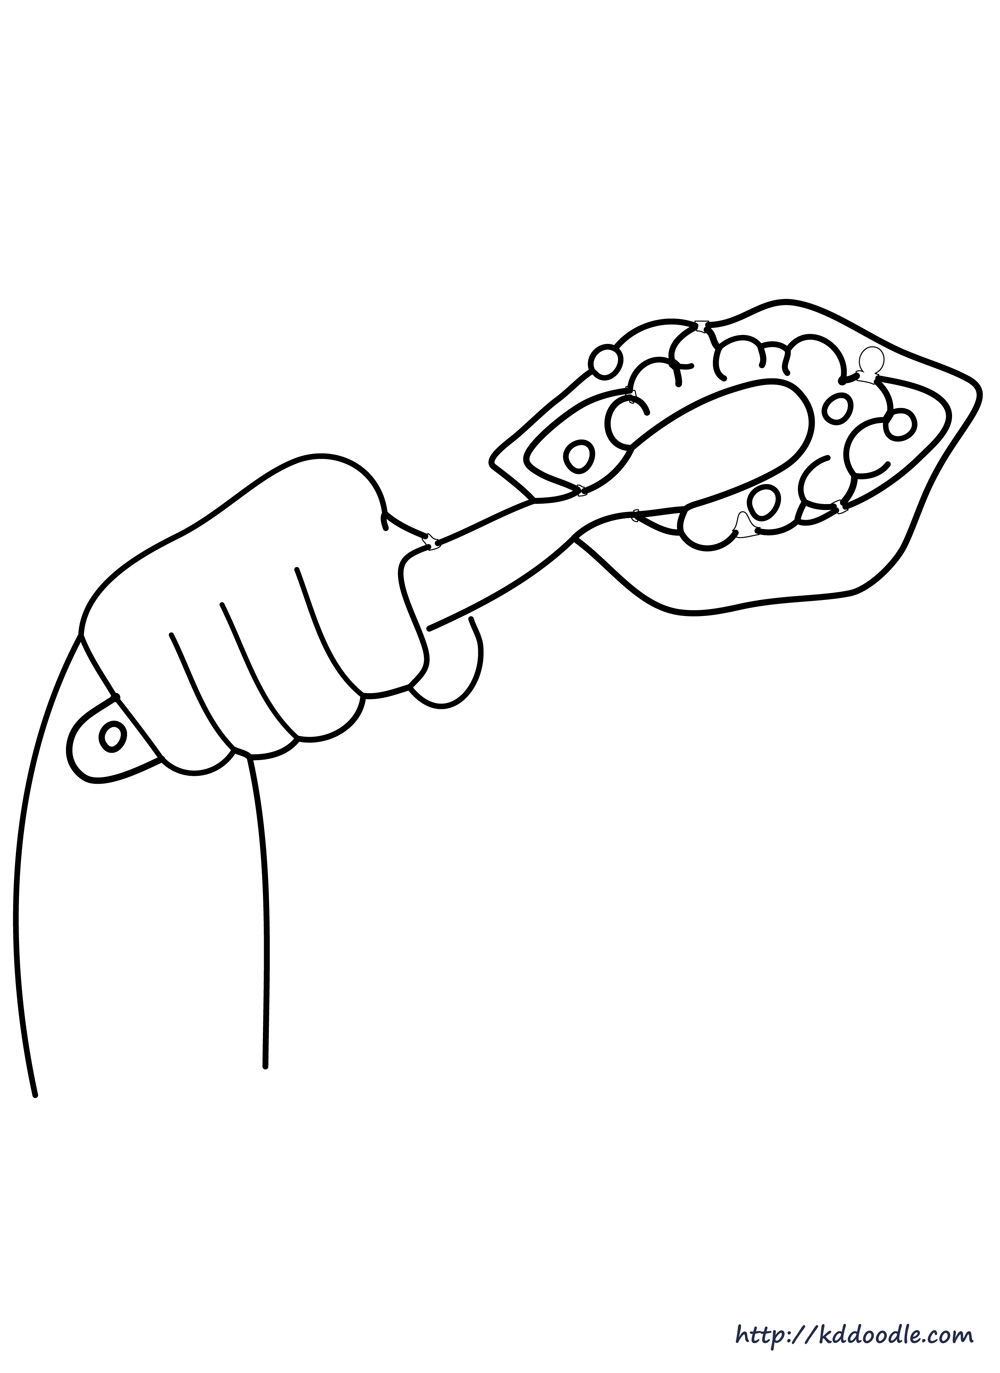 boy brushing teeth coloring pages - photo#20